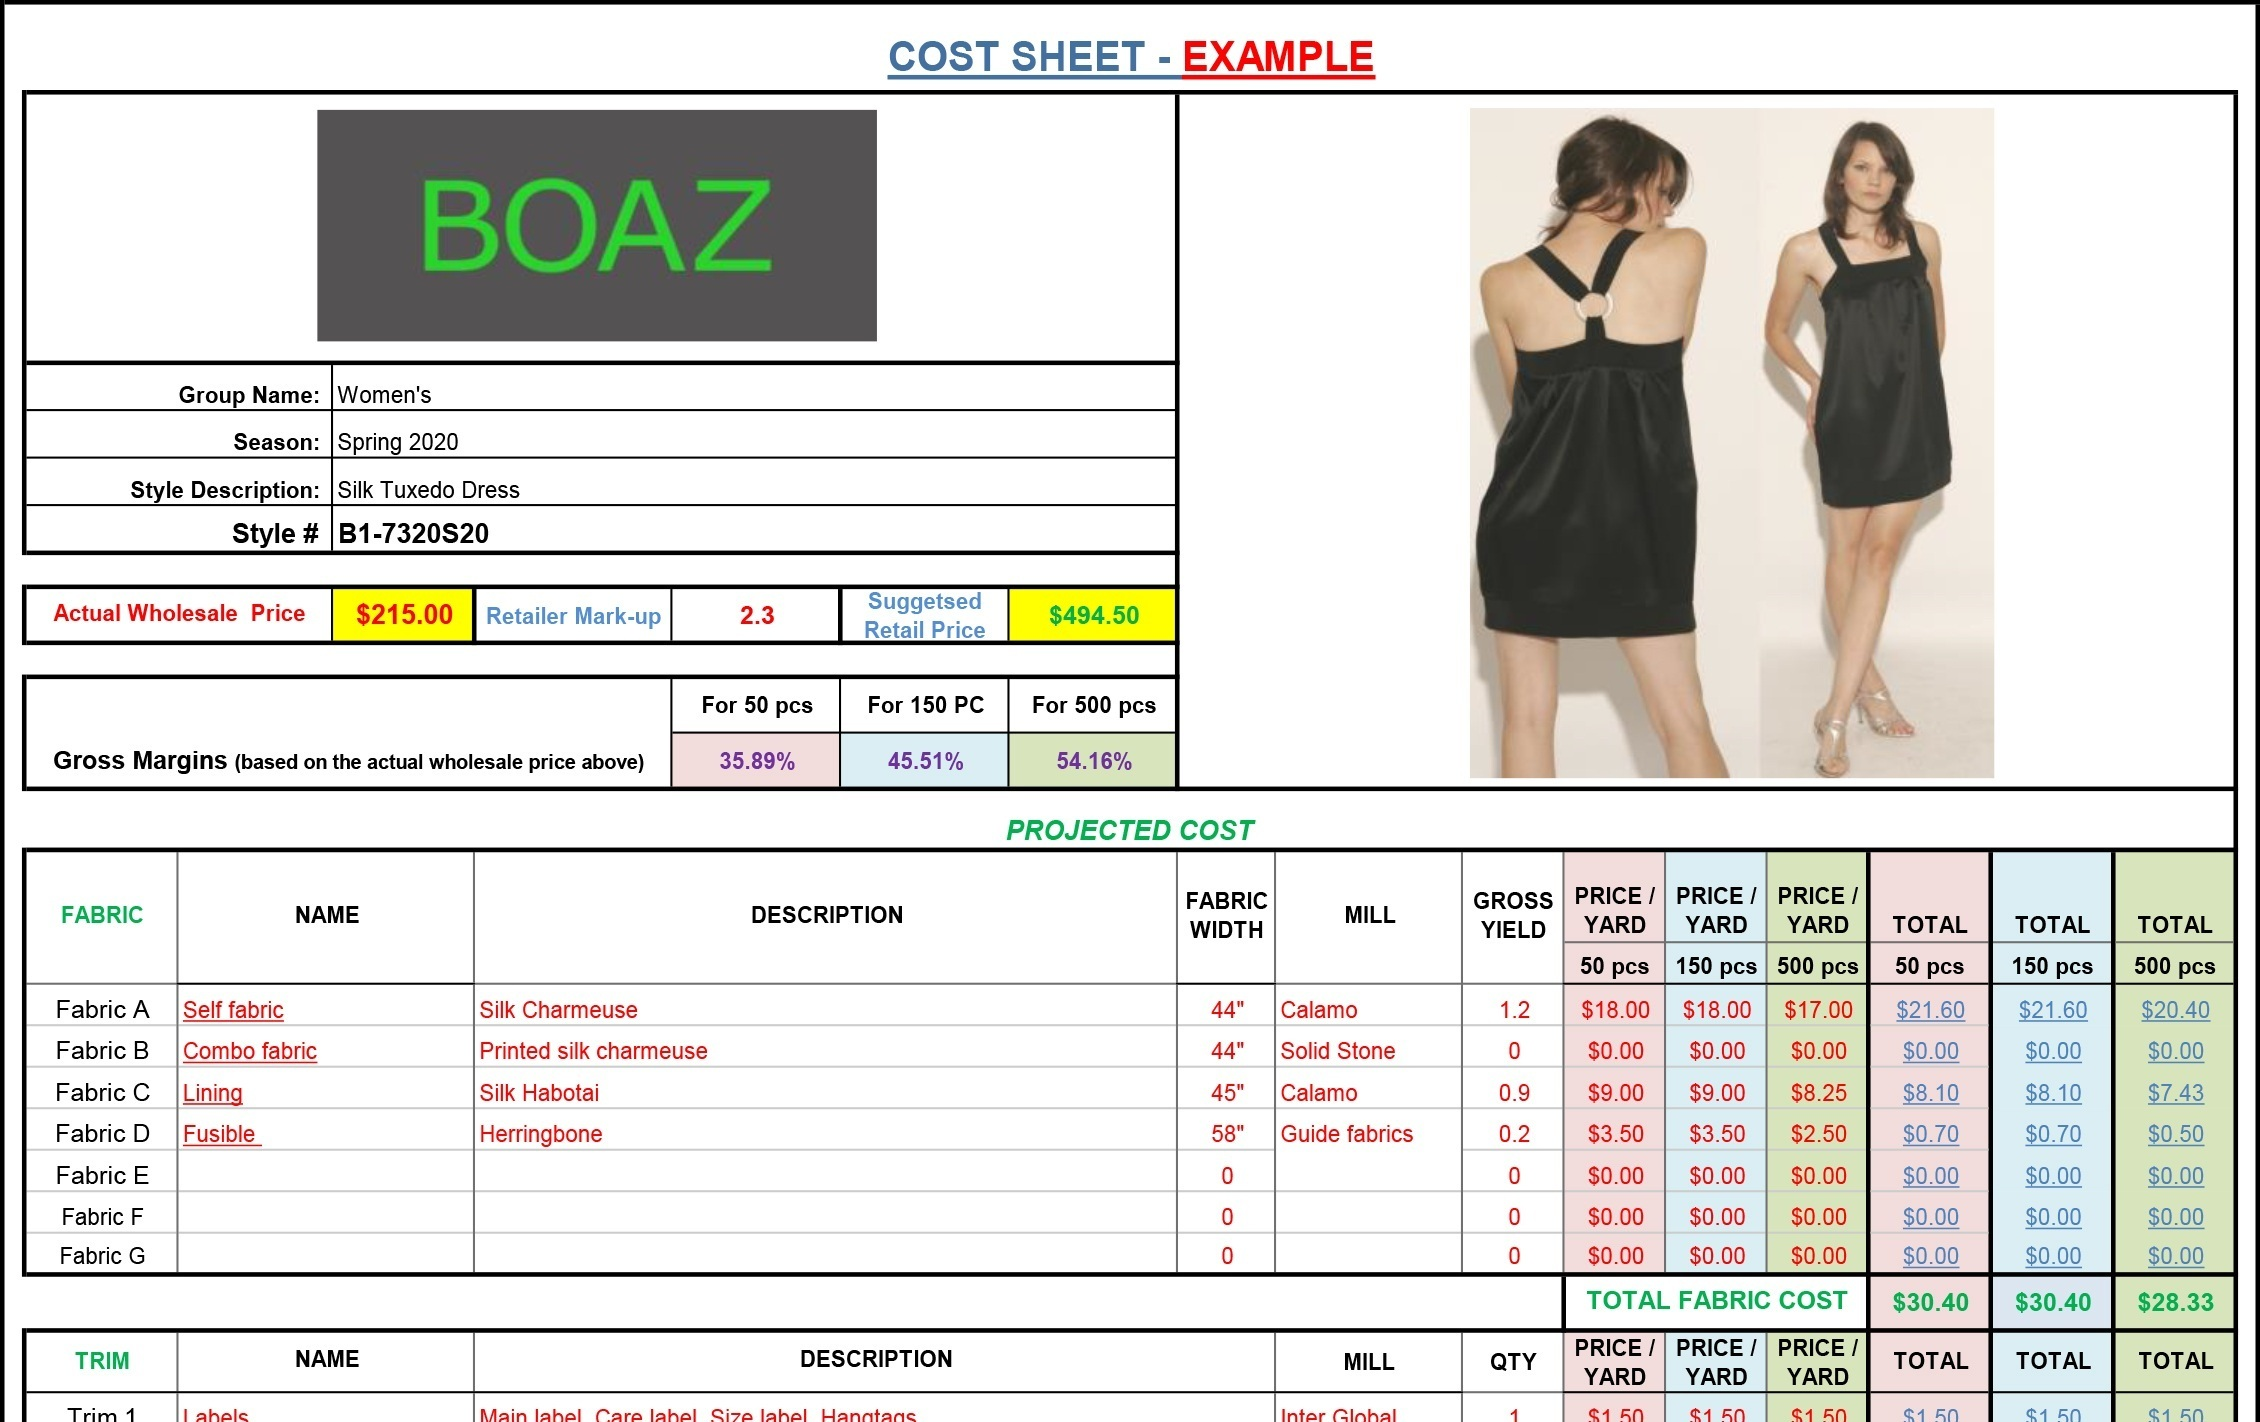 Cost Sheet Form New Version Fashion Business Solutions Human B